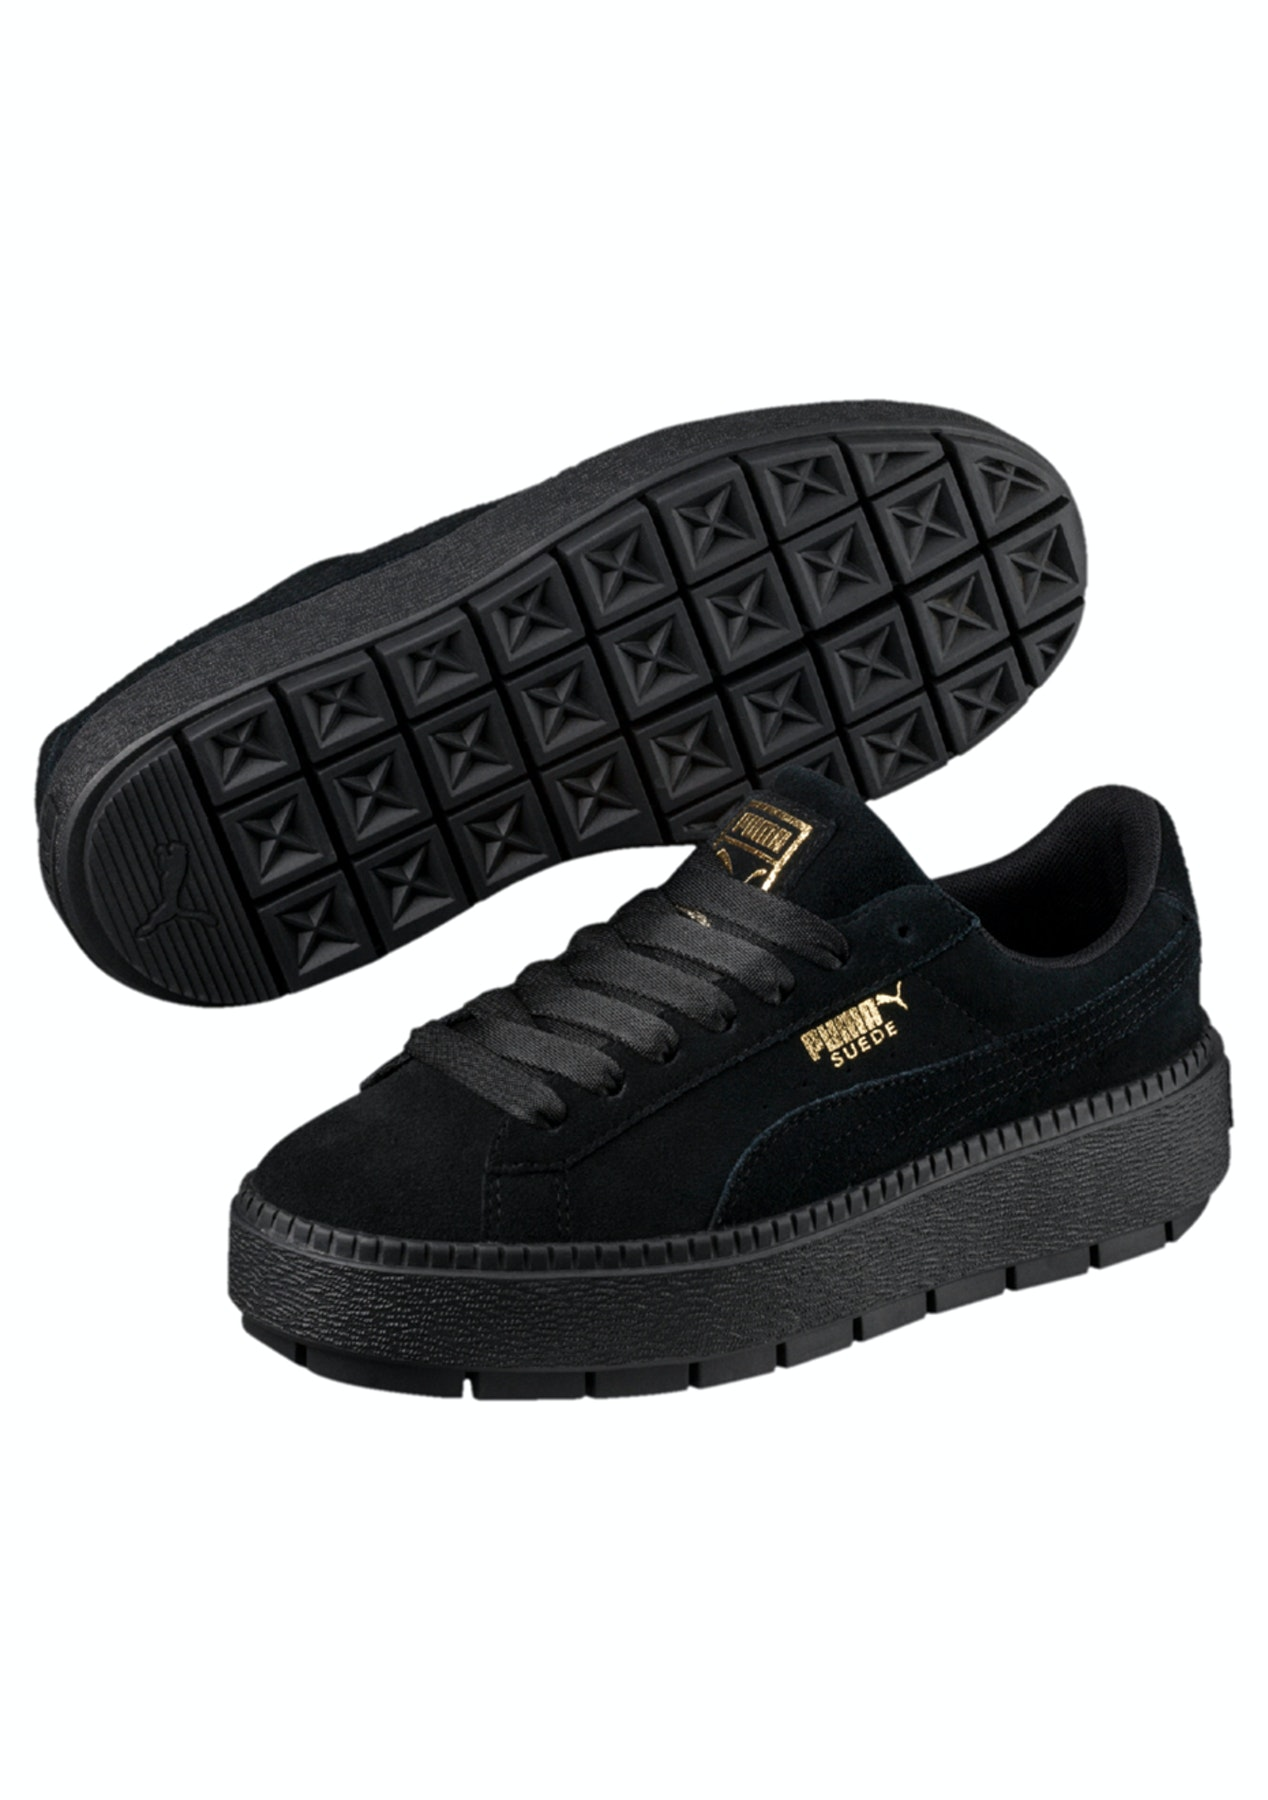 981bcdfe68d5 Puma Womens - Suede Platform Trace Black - Puma Womens   Kids Up to 60% Off  - Onceit